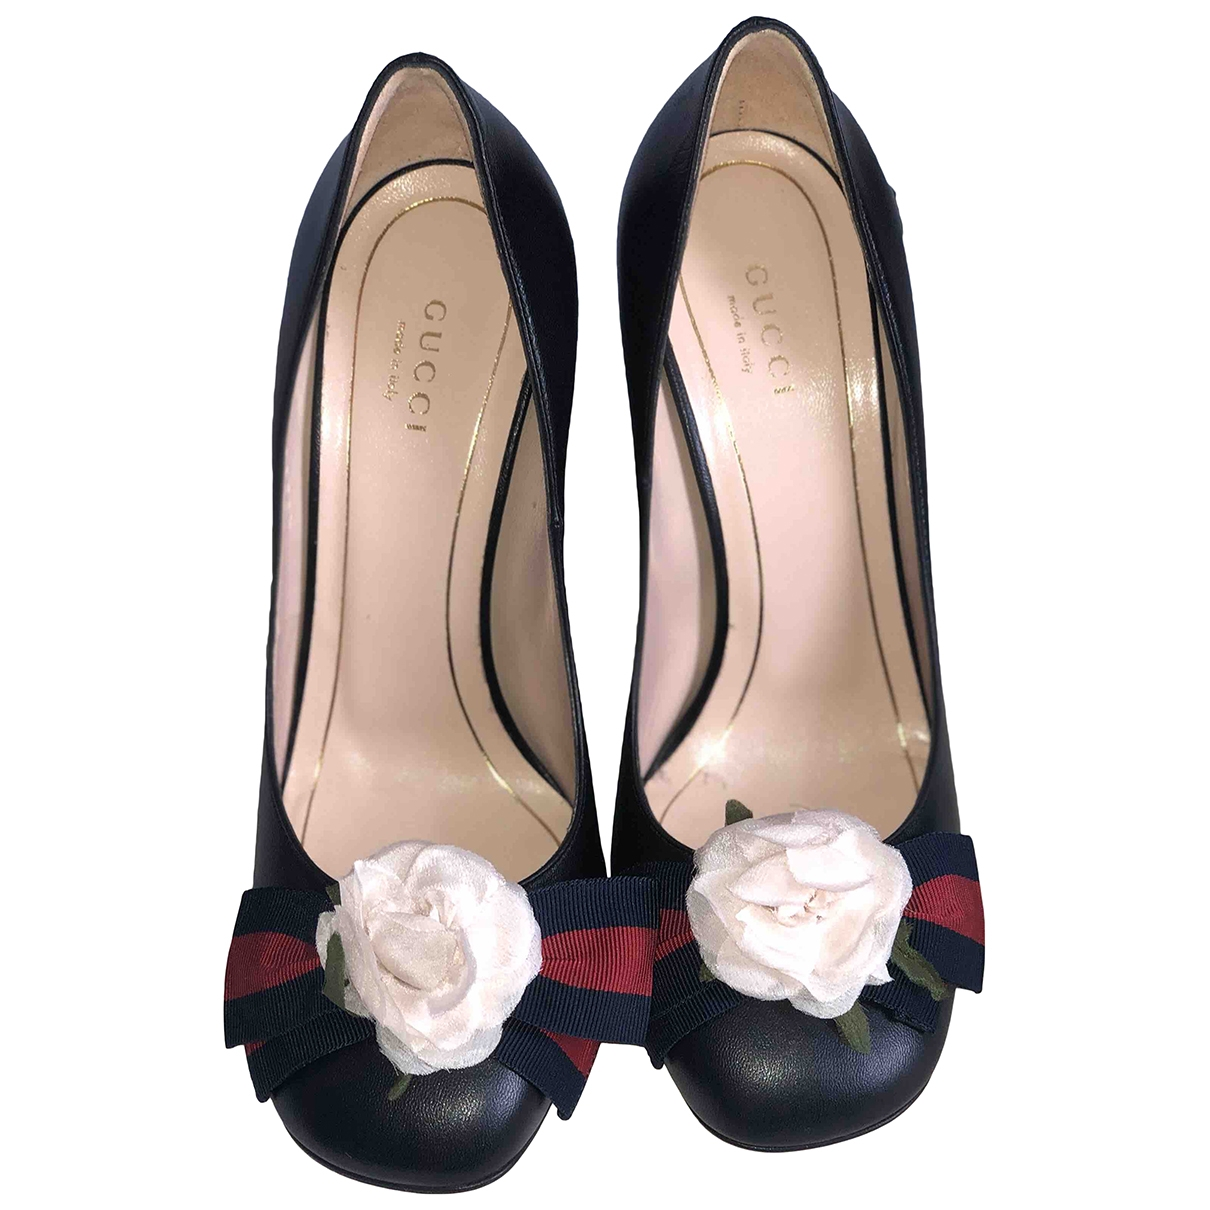 Gucci Sylvie Black Leather Heels for Women 37 EU